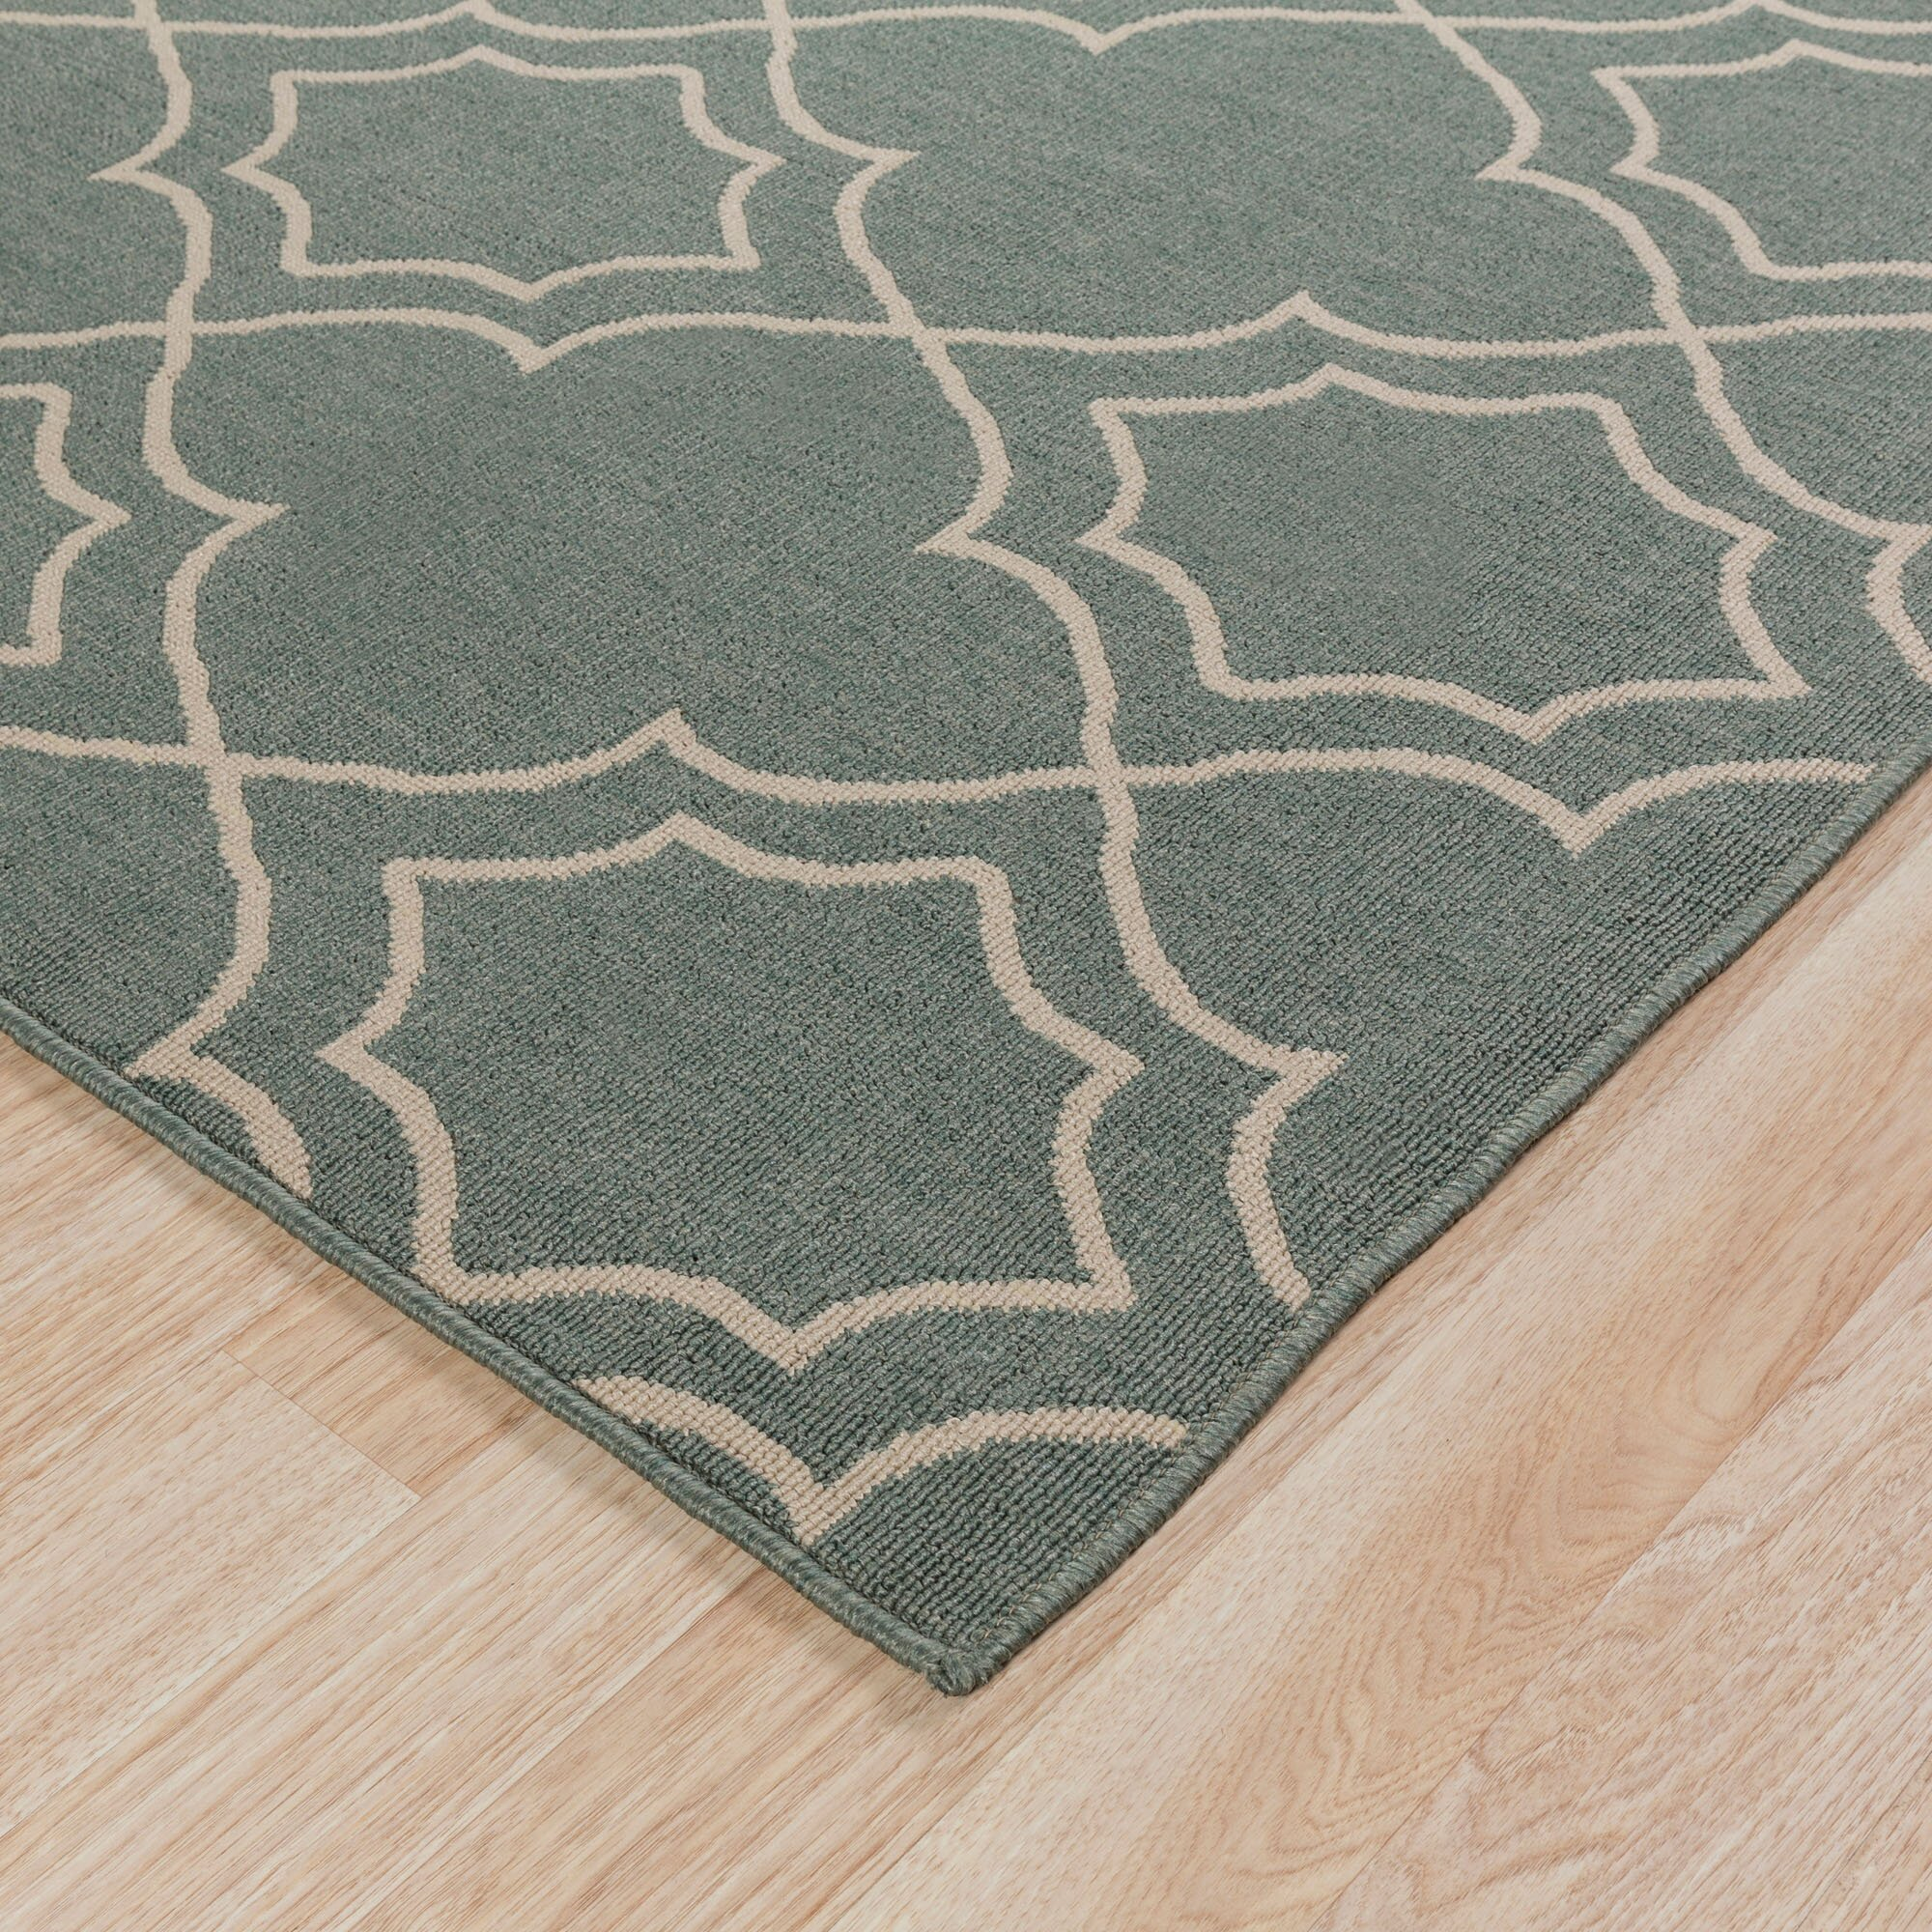 Alcott hill amato green indoor outdoor area rug reviews wayfair - Moderne trappenhelling ...